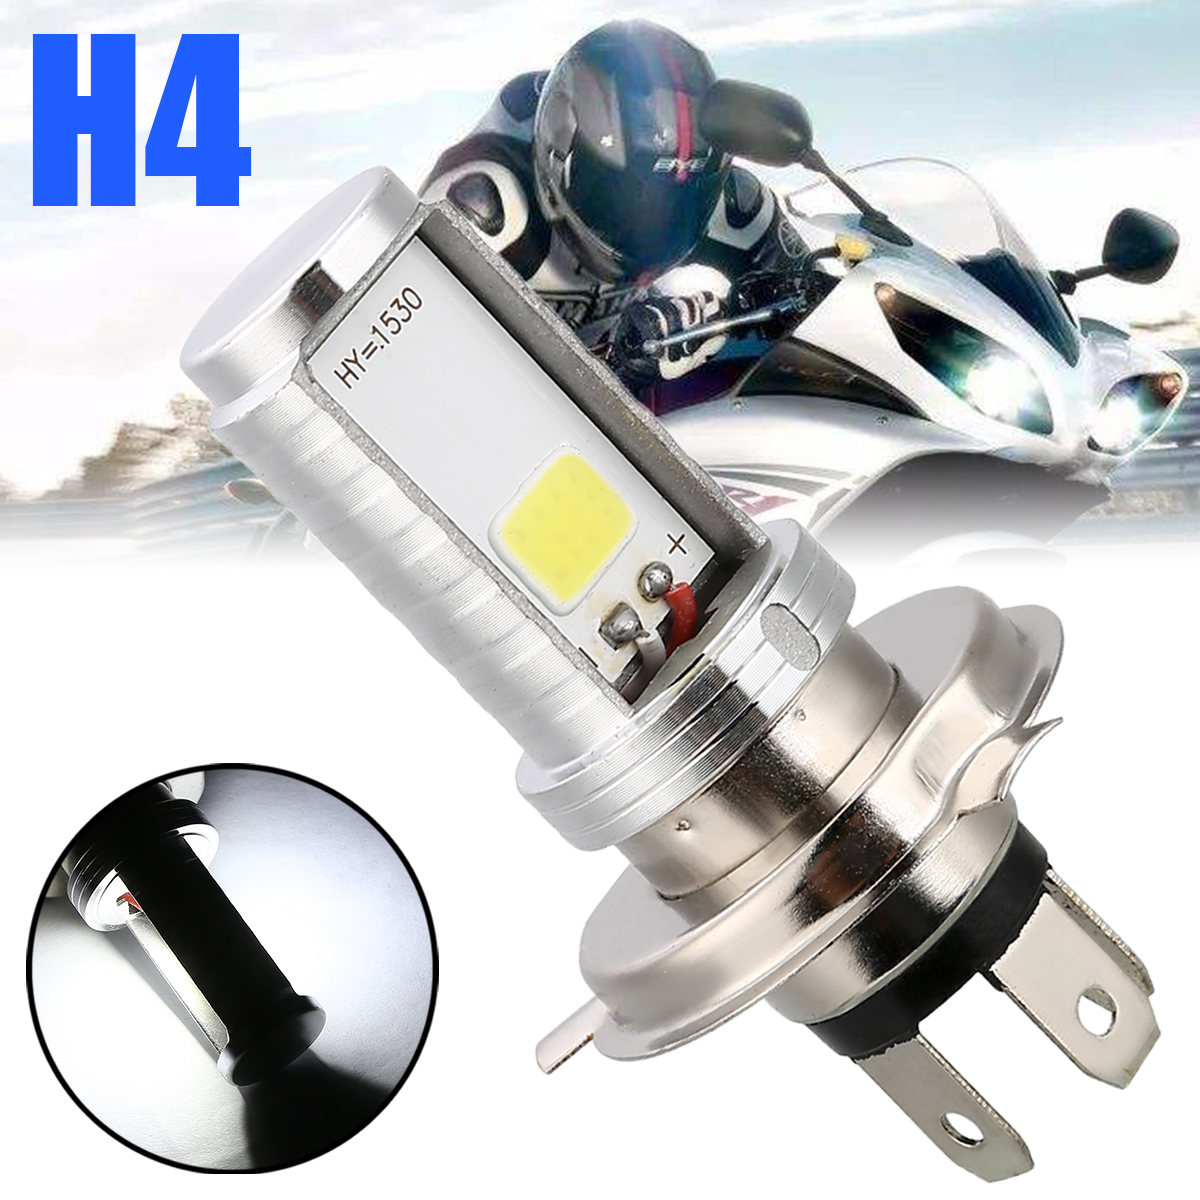 Treyues 1PC Double Sided Motorcycle H4 COB LED Headlight Hi-Lo Beam Front Lamp Bulb White For Moto Accessories